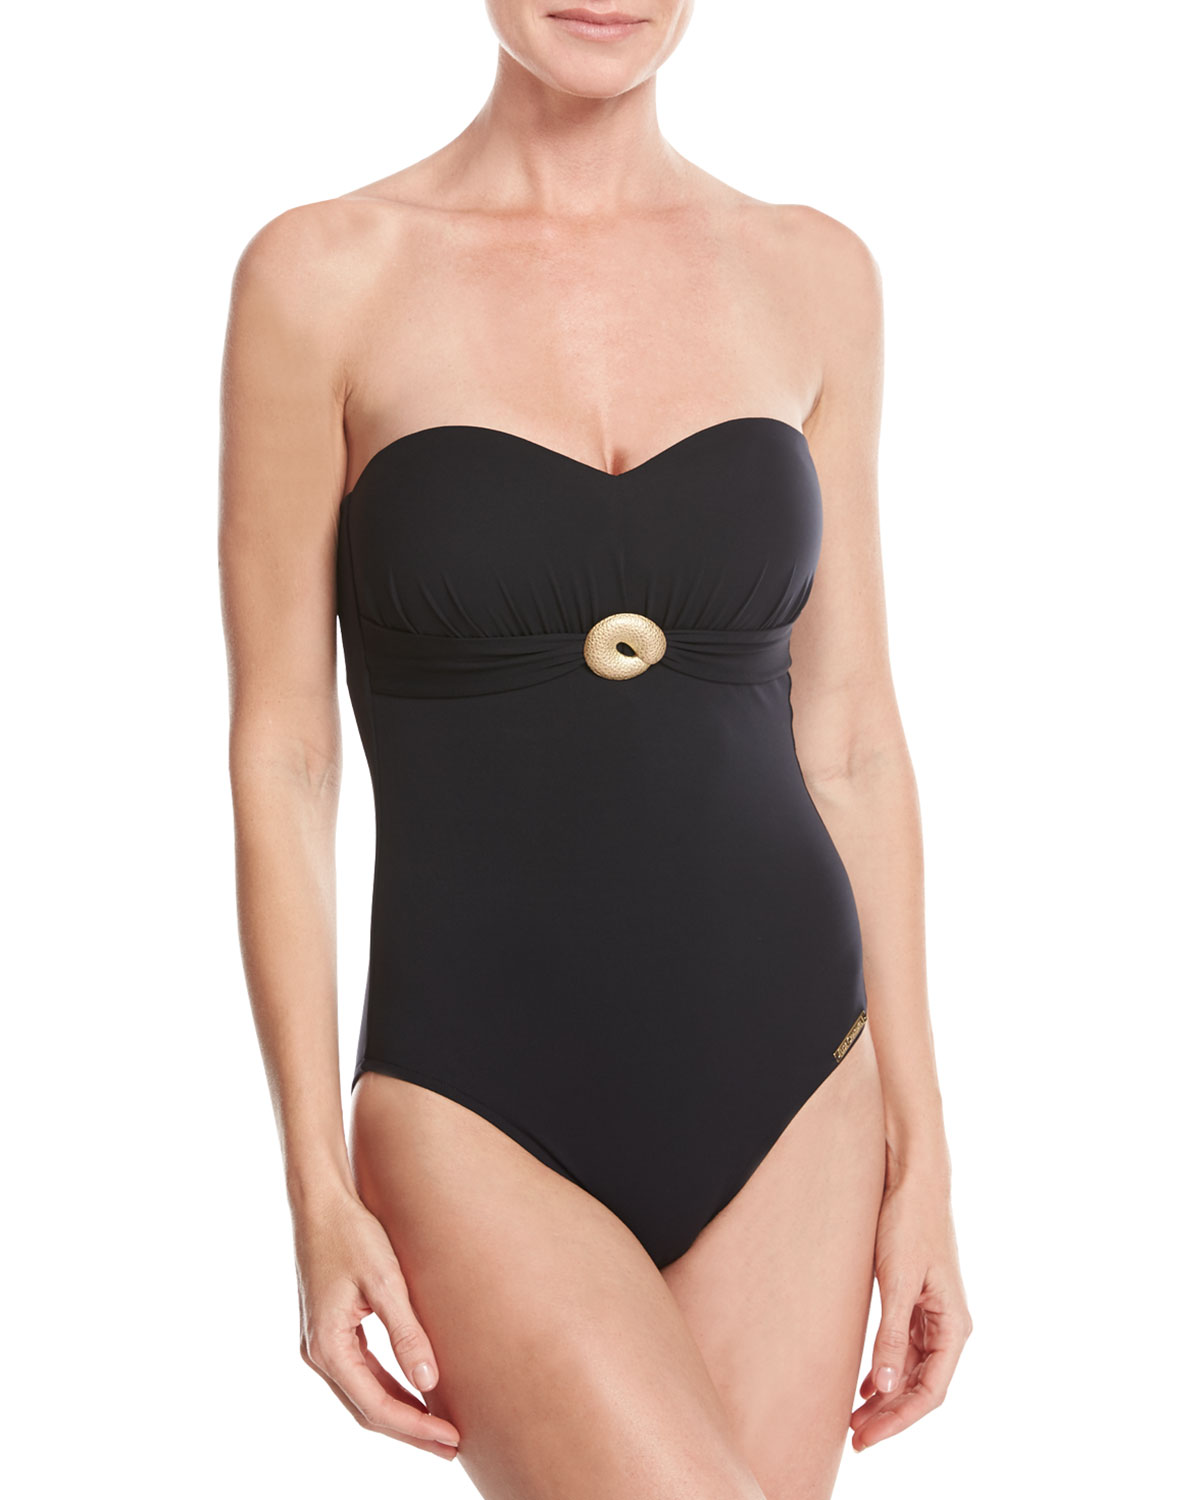 Casting Beaute Bandeau One-Piece Swimsuit Black